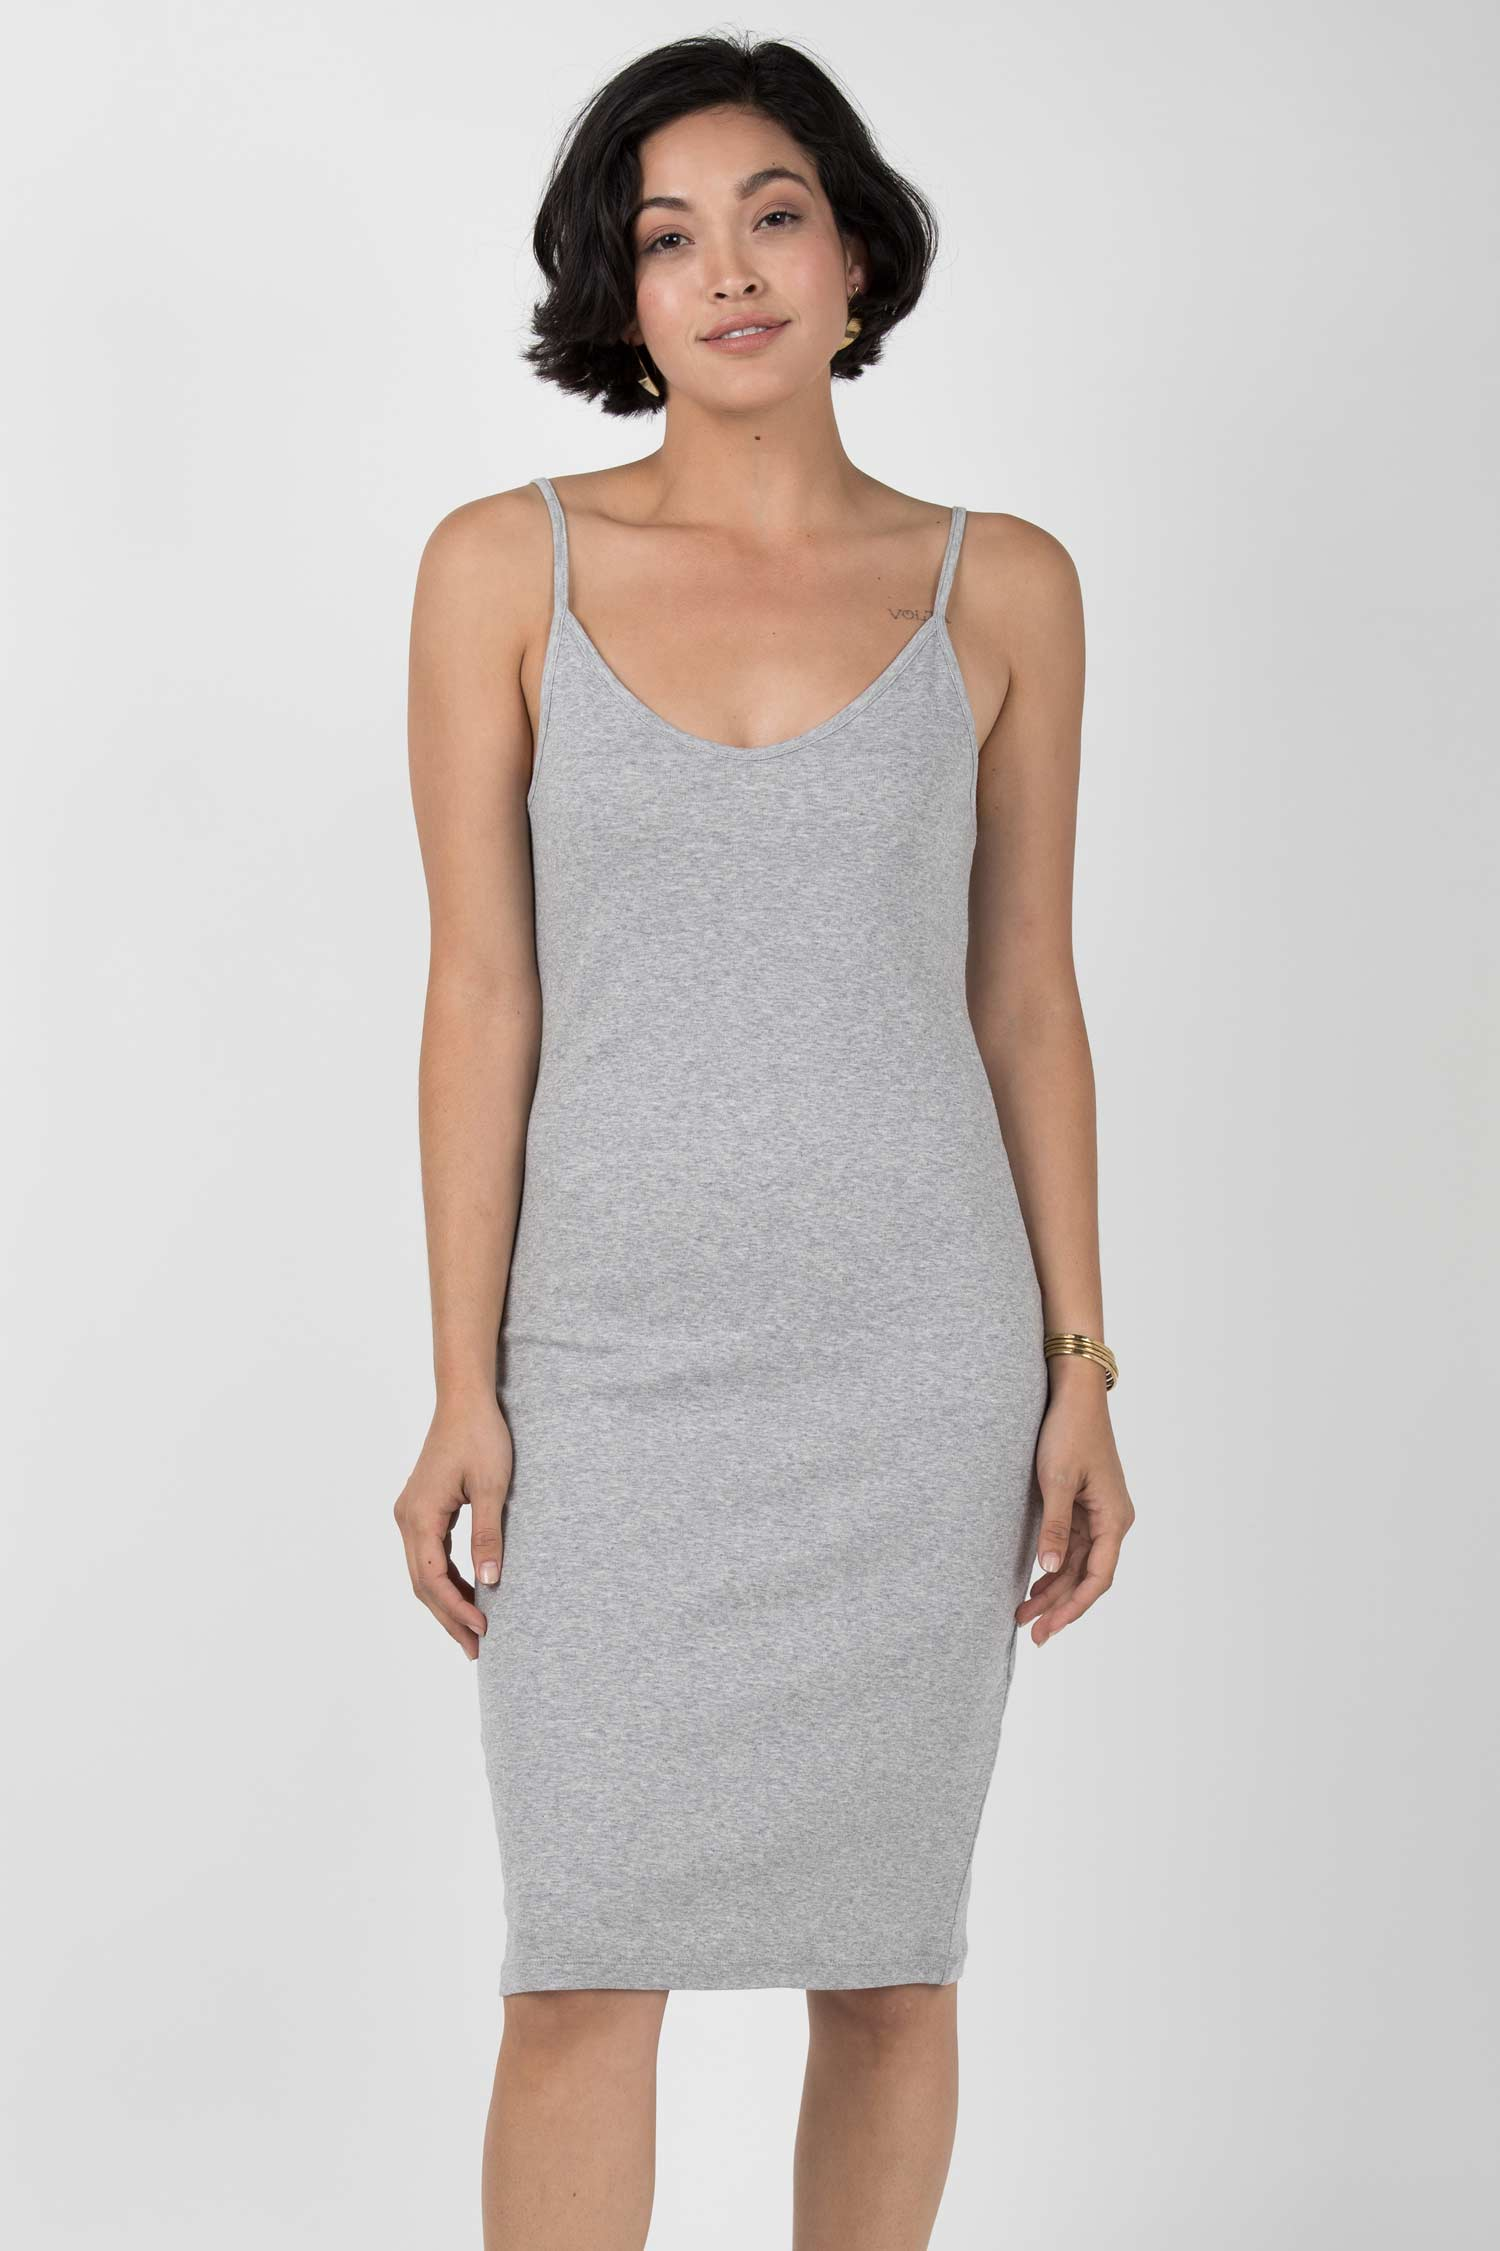 Womens Organic Cotton Dress | Gray Slip Dress | Indigenous